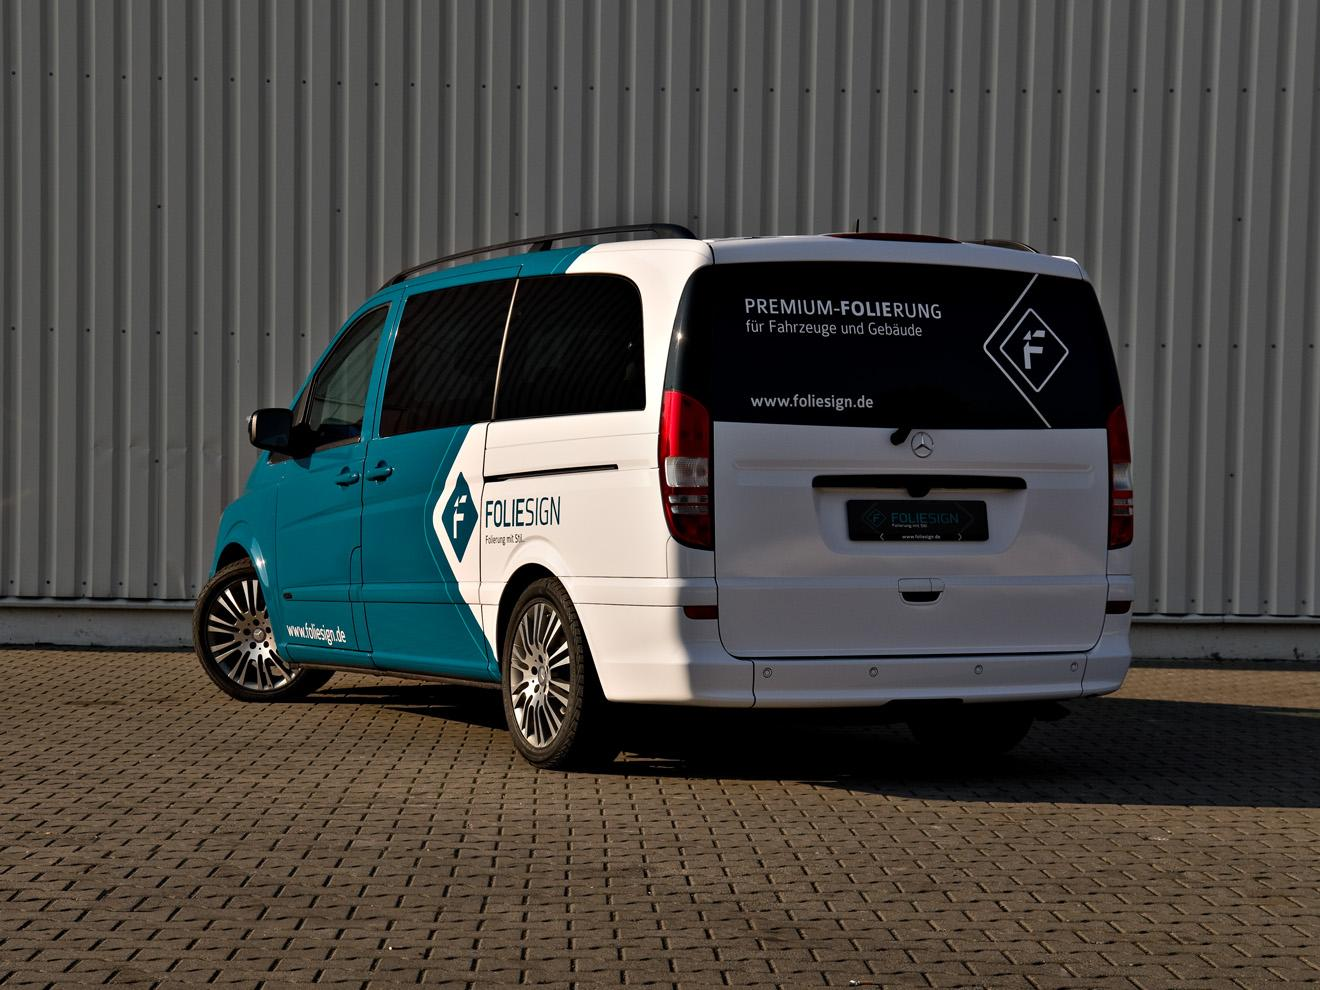 FOLIECAR Mercedes Benz Viano 2011 - Vollfolierung FOLIESIGN